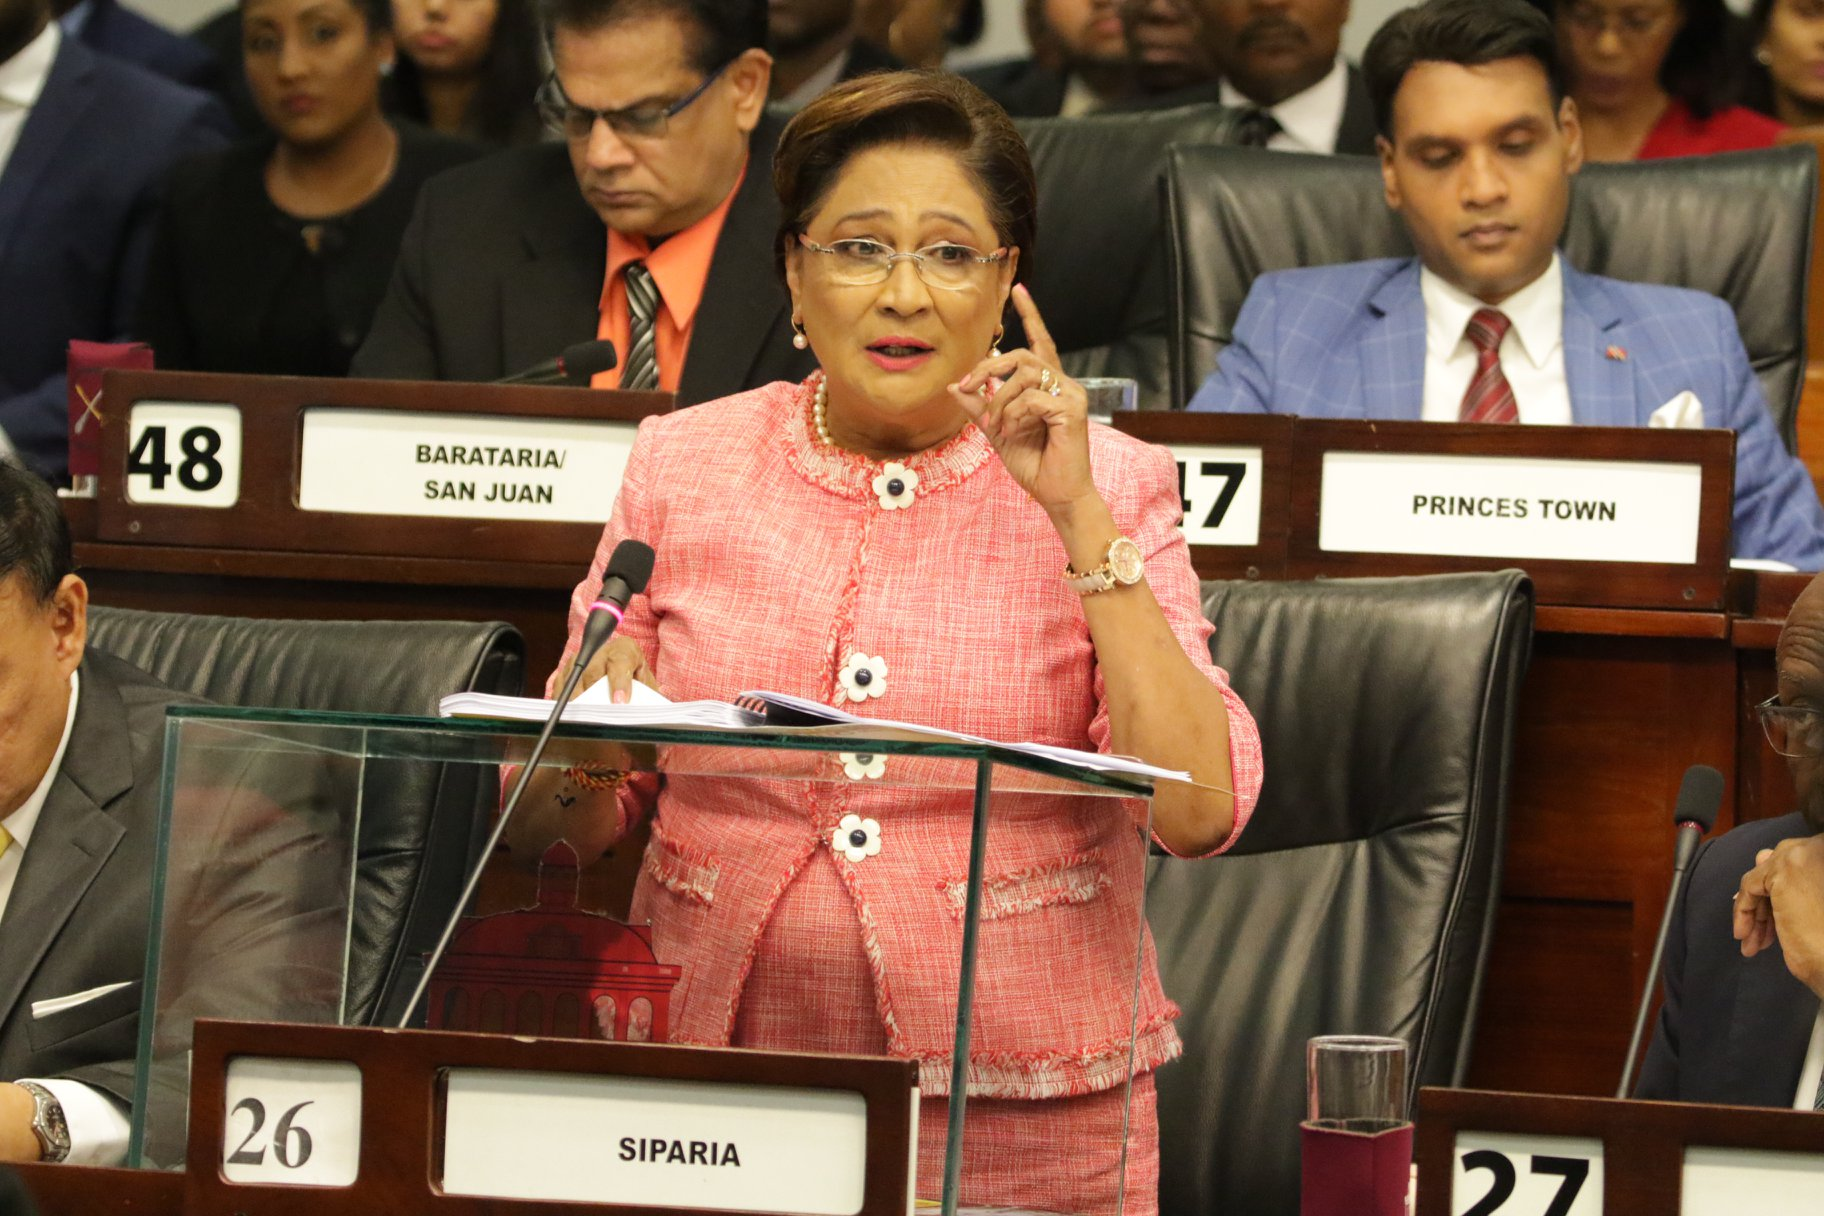 File photo. Photo via Facebook, Parliament of Trinidad and Tobago.